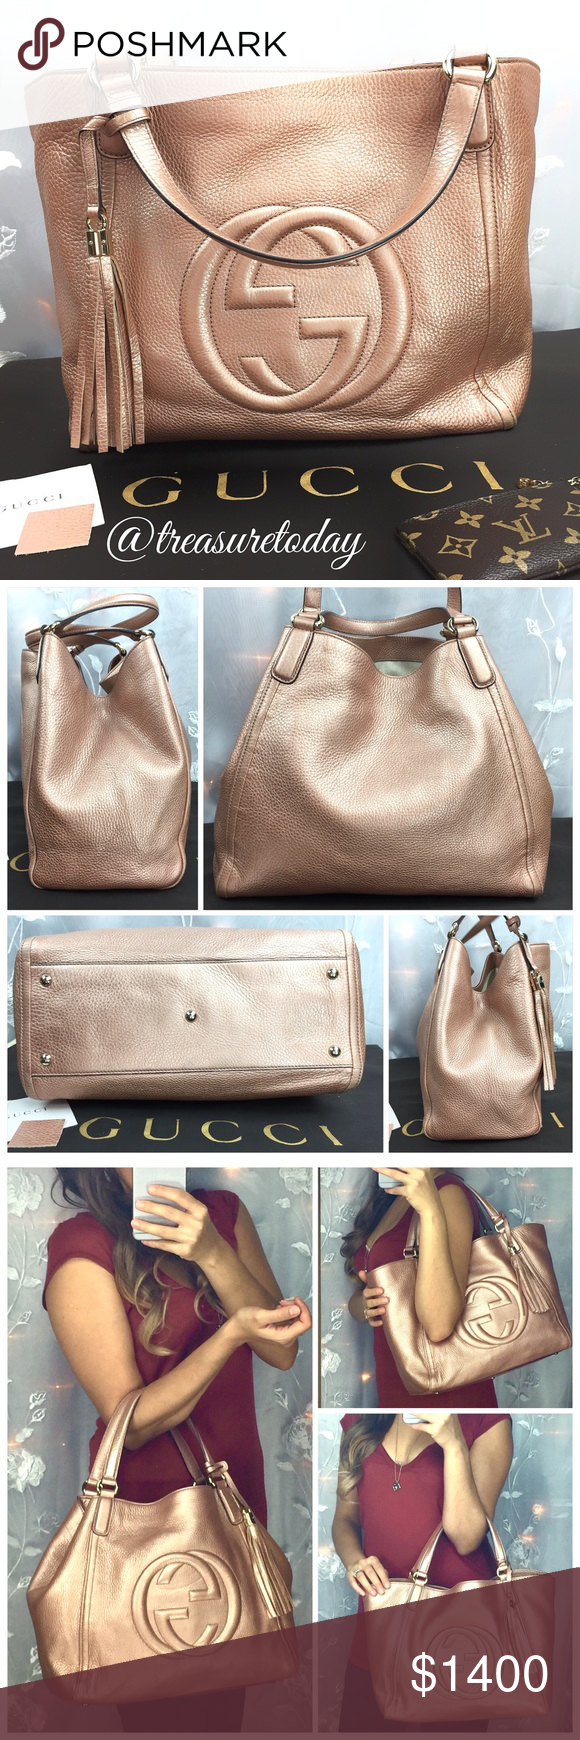 558bc48c170 Gucci Soho Rose Gold Japan Exclusive Satchel Tote Absolutely stunning !  Super rare